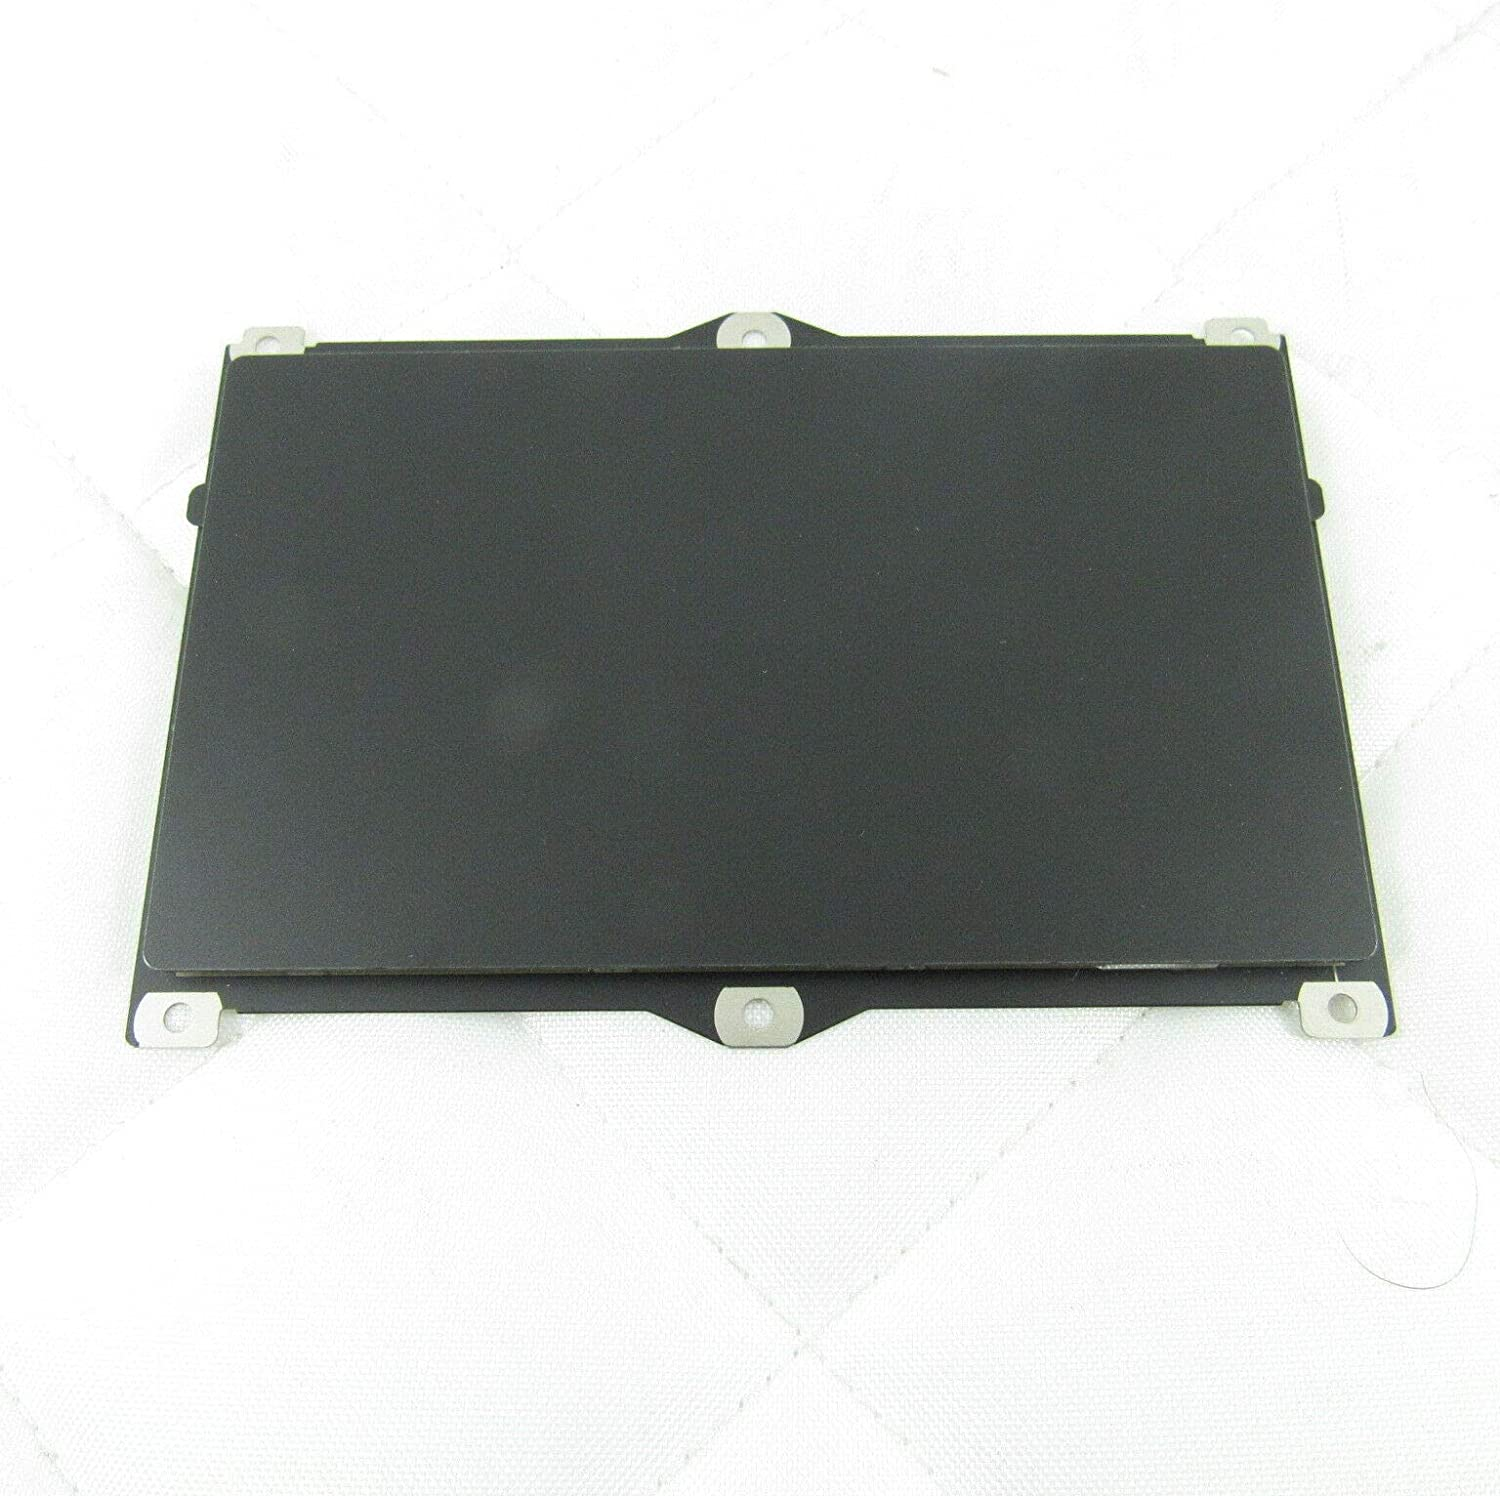 Comp XP TP for HP Probook 430 G5 440 G5 Touchpad L01056-001